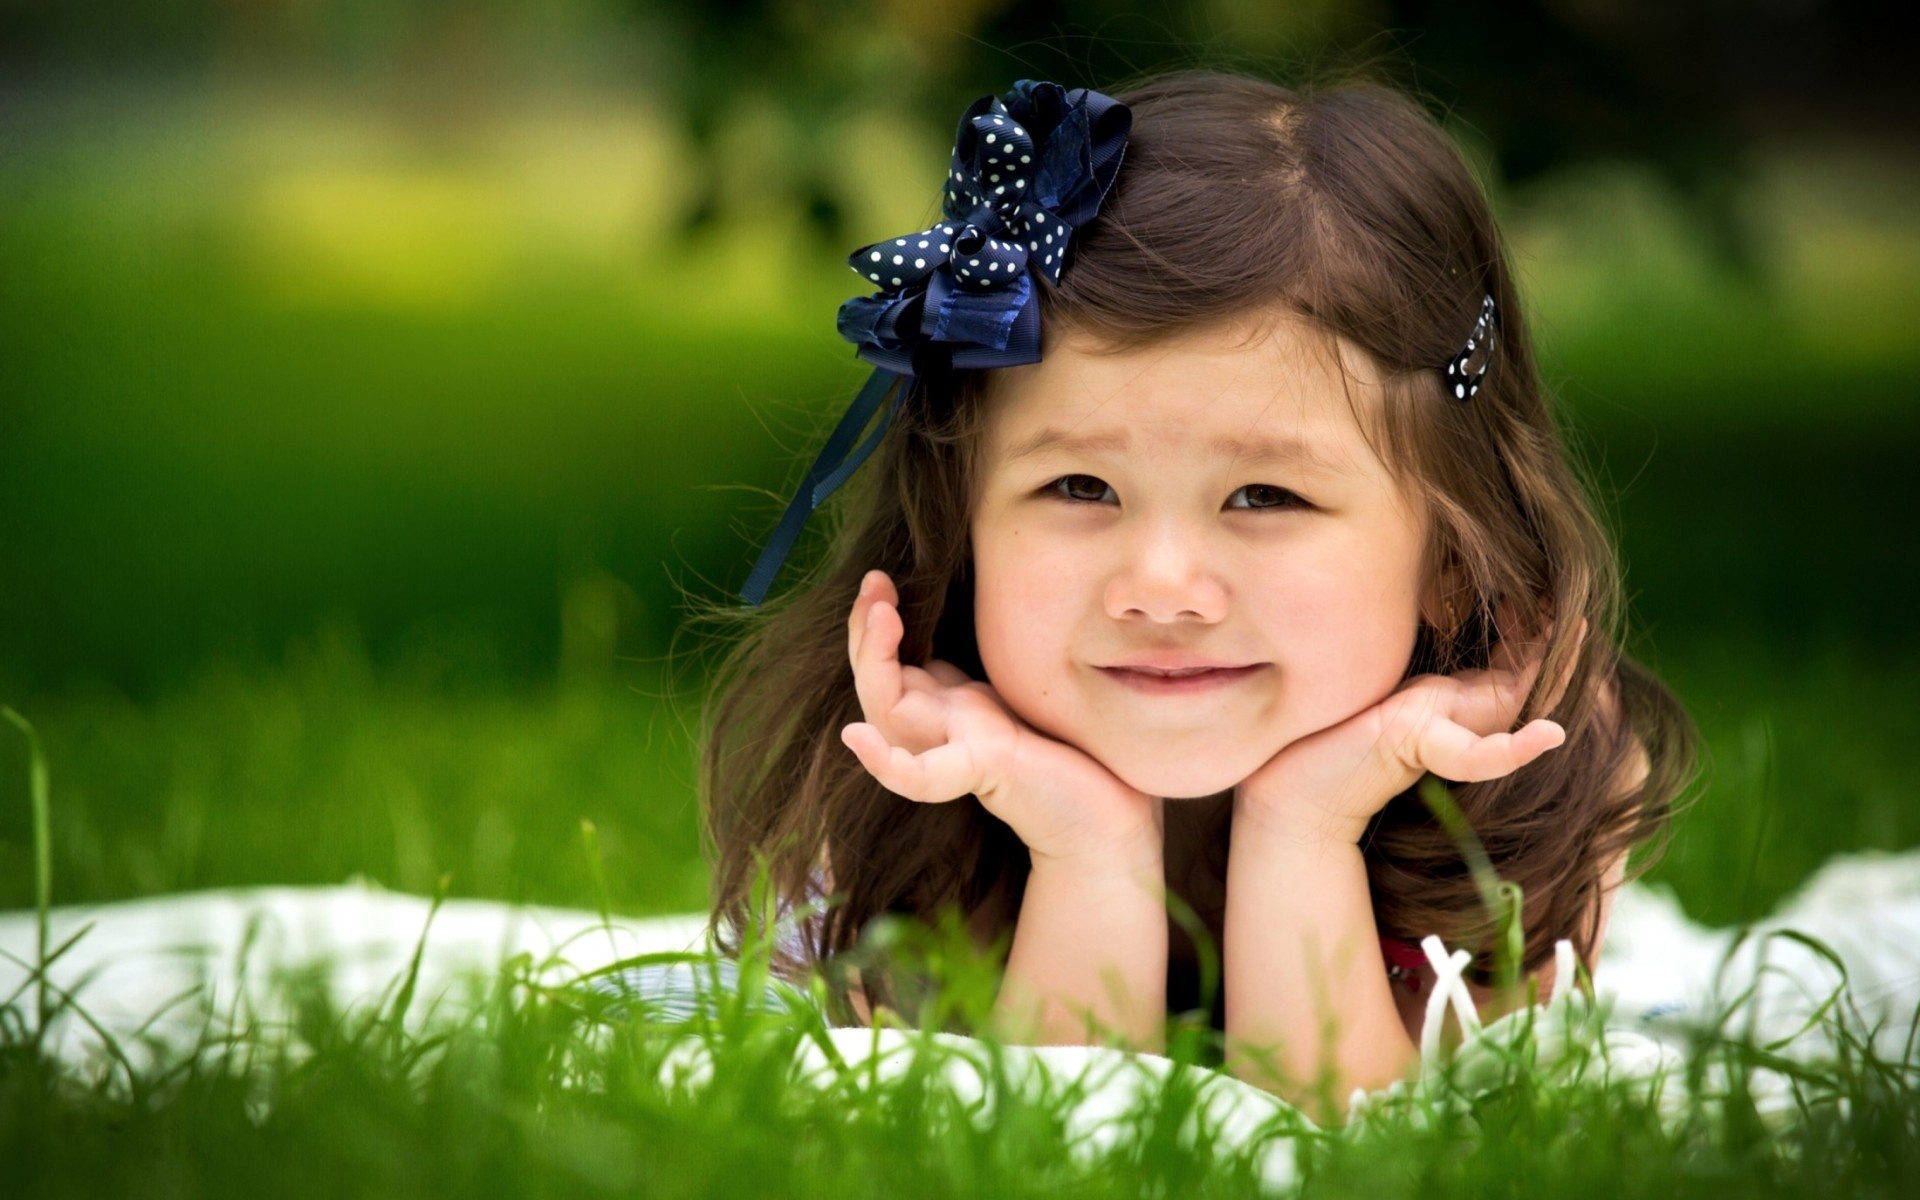 girl with smiling face